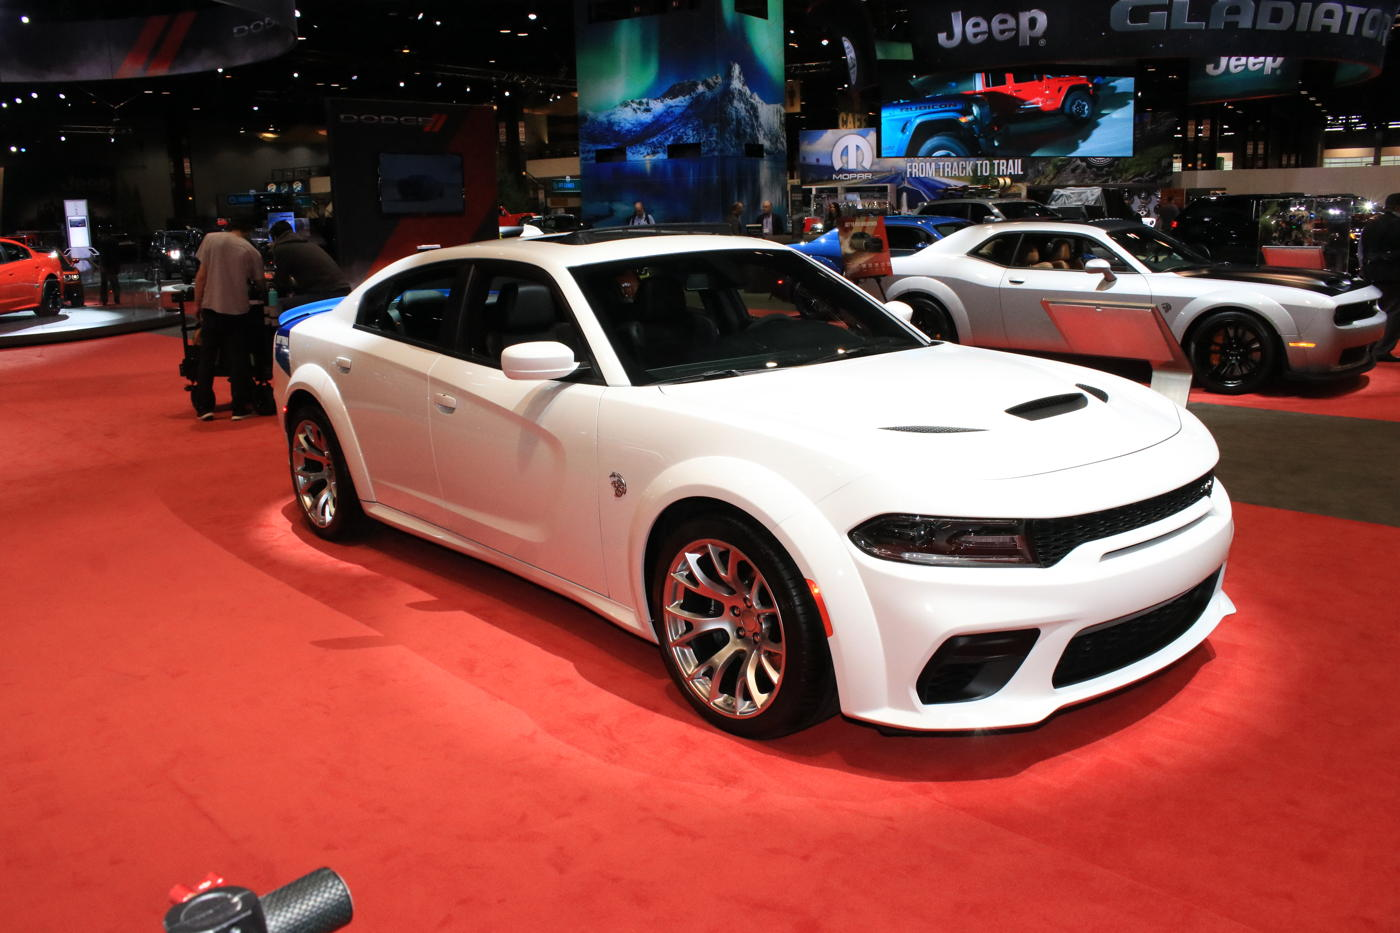 2020 Dodge Charger SRT Widebody